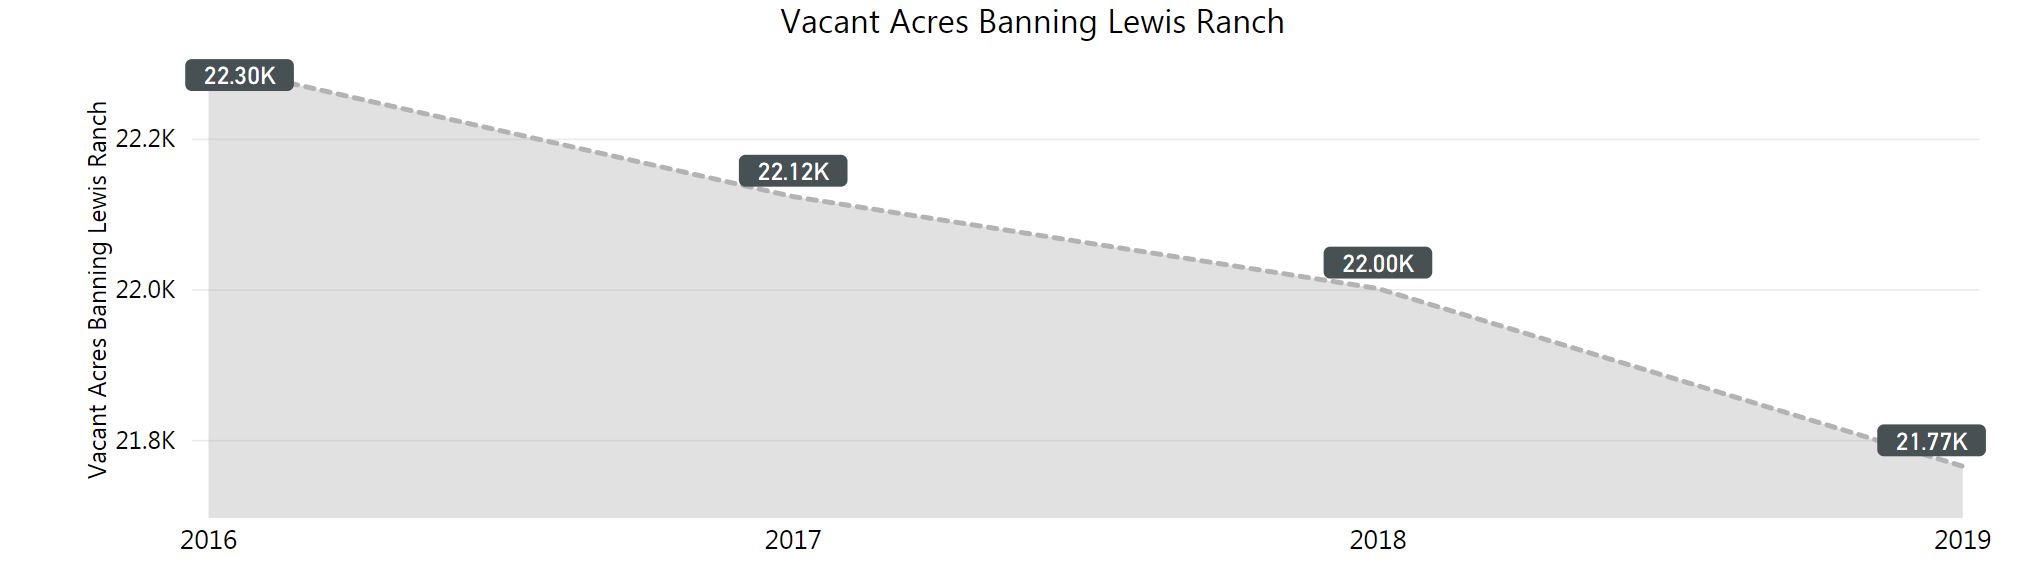 graph of vacant acres in banning lewis ranch. Decreasing each year. in 2019 there were 21,770 acres